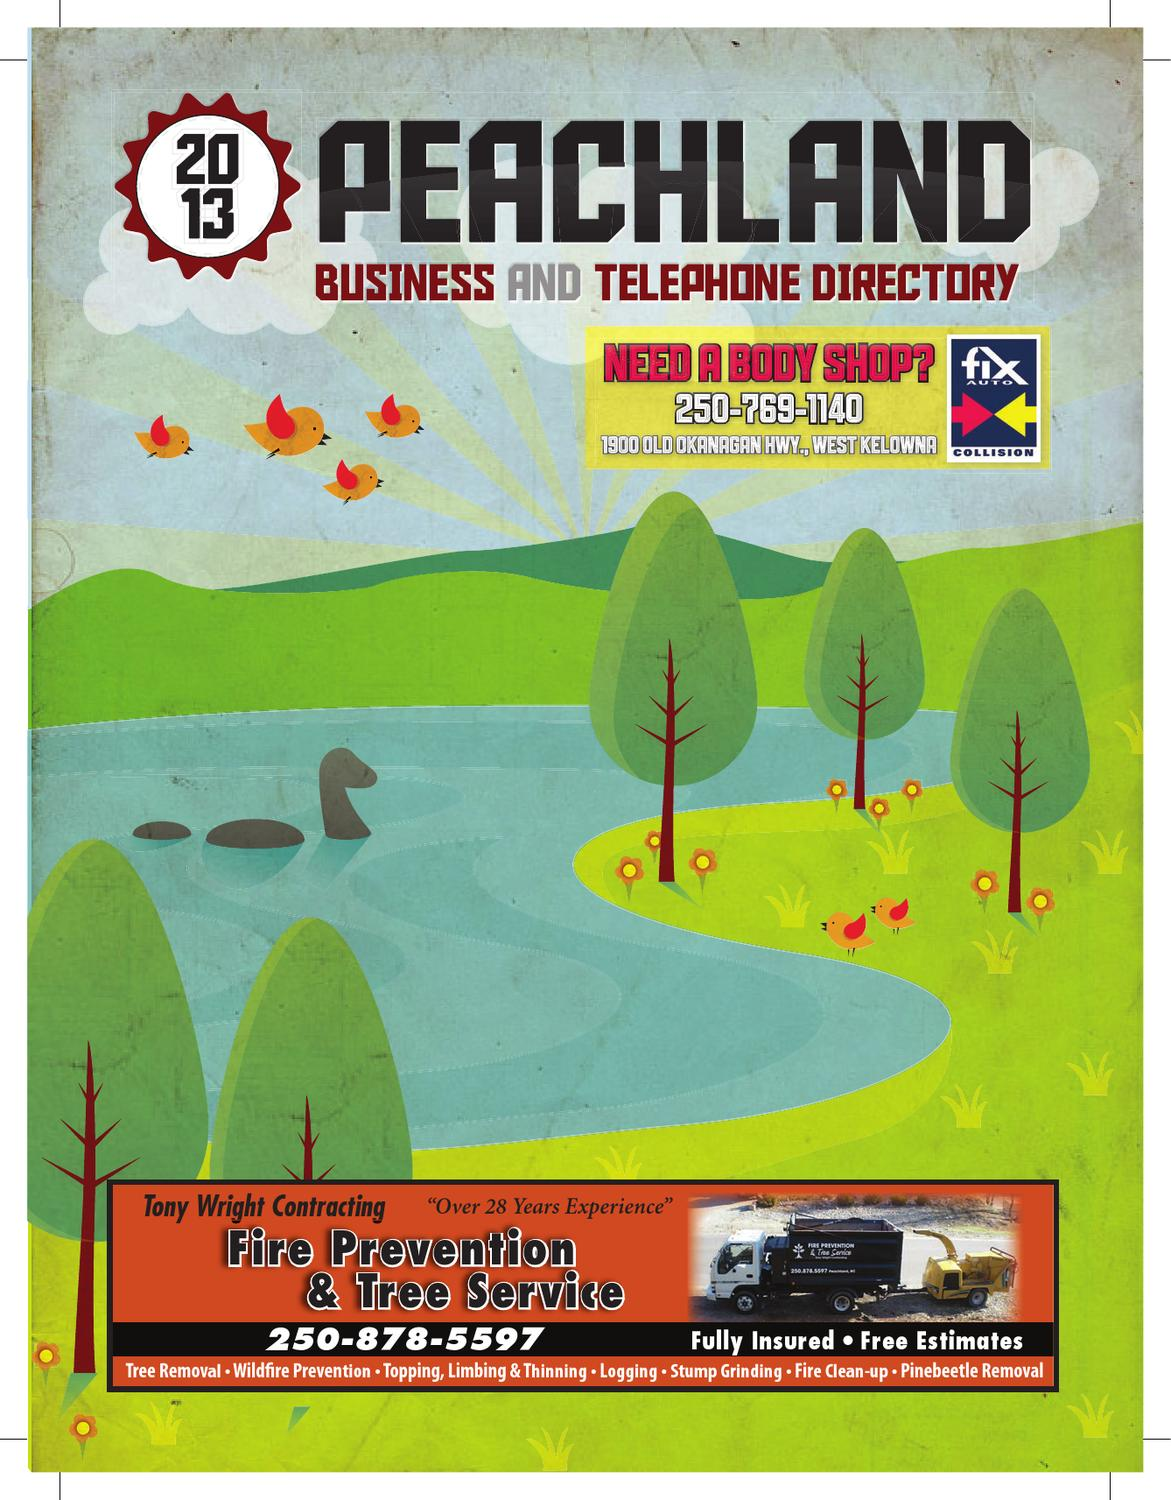 cb0007d81d837a Peachland 2013 Phone Book by Mike Rieger - issuu